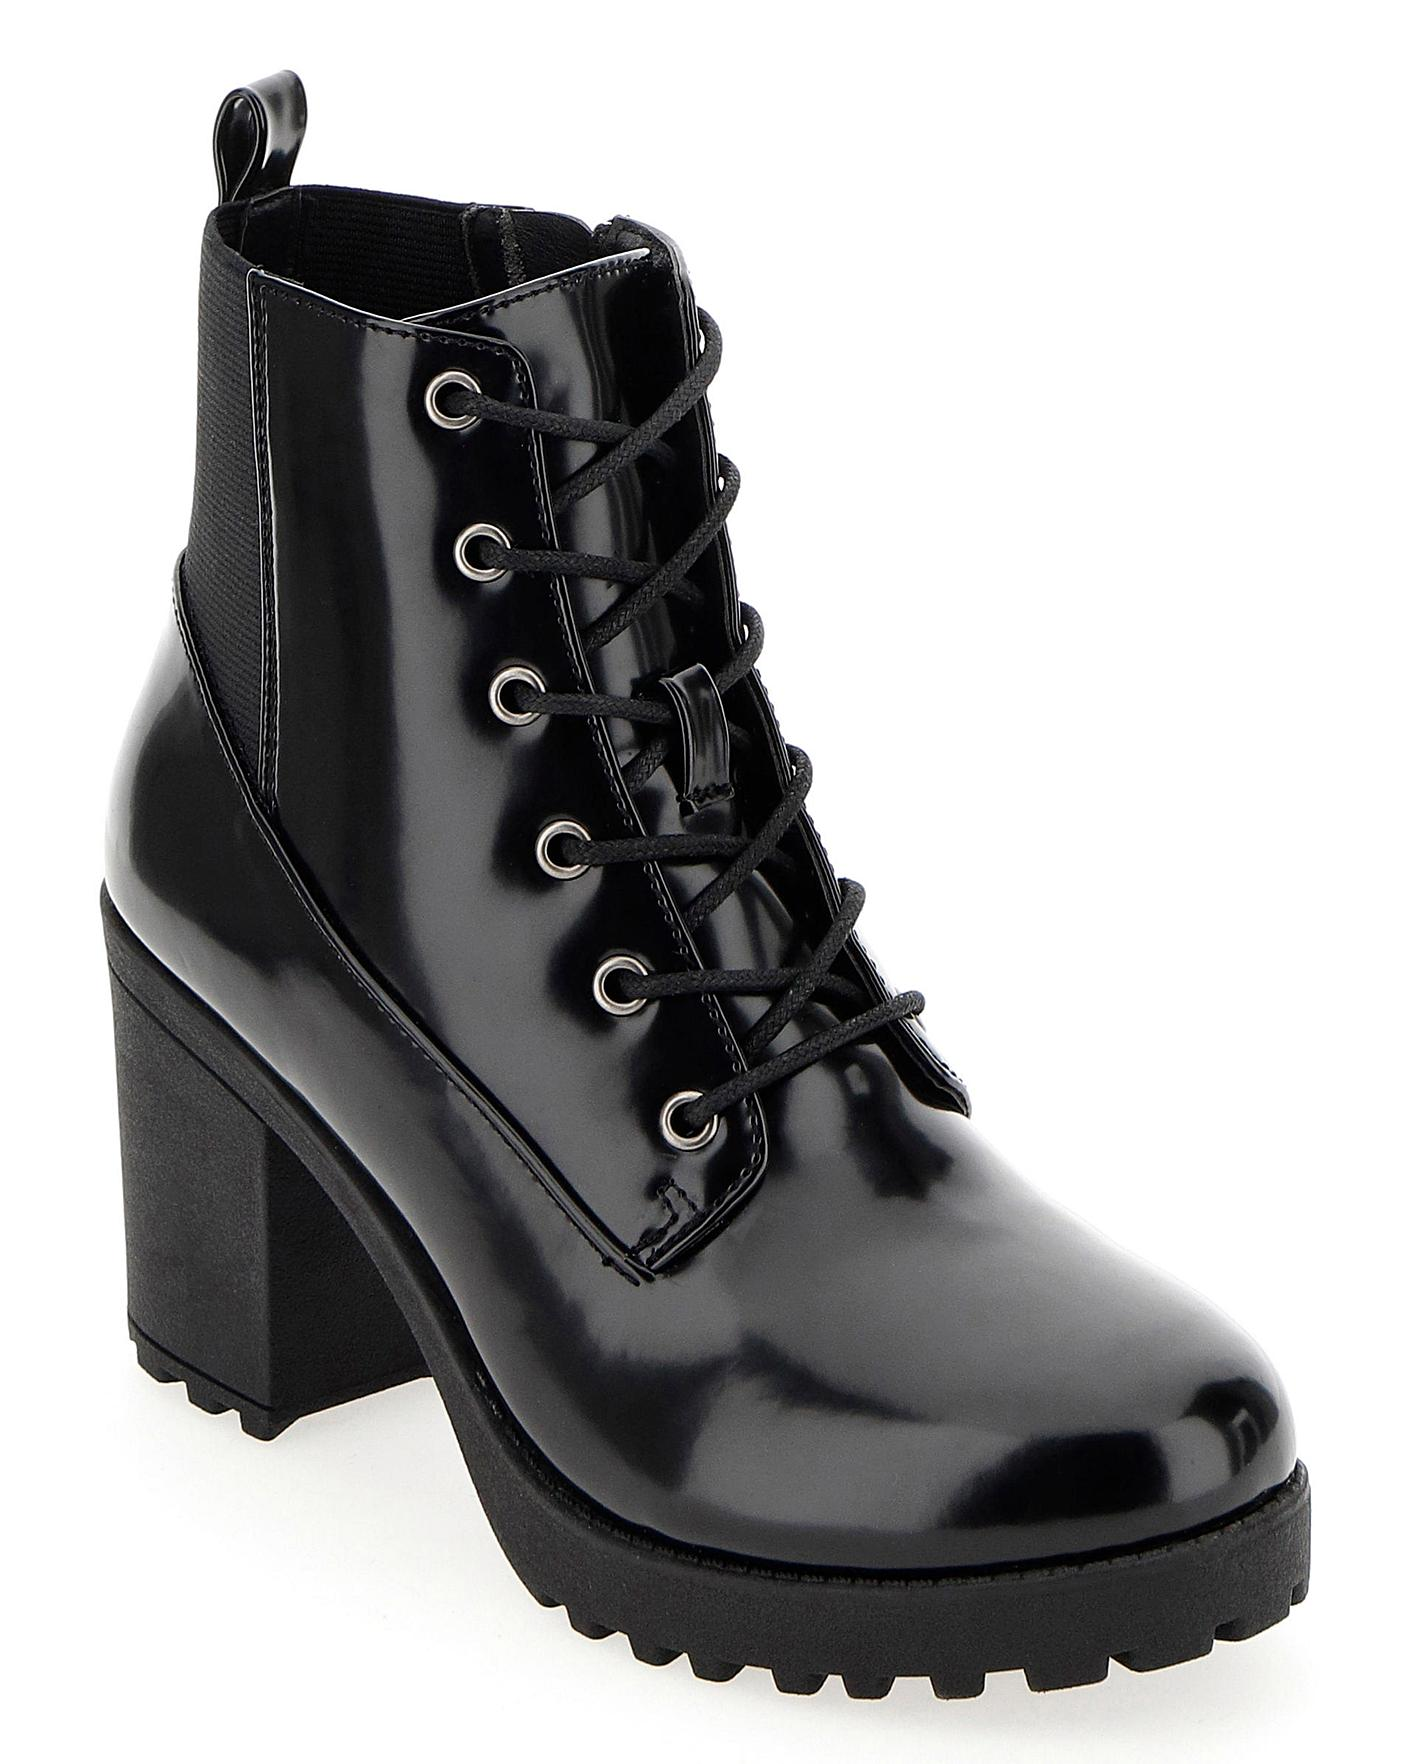 Blair Lace Up Boots